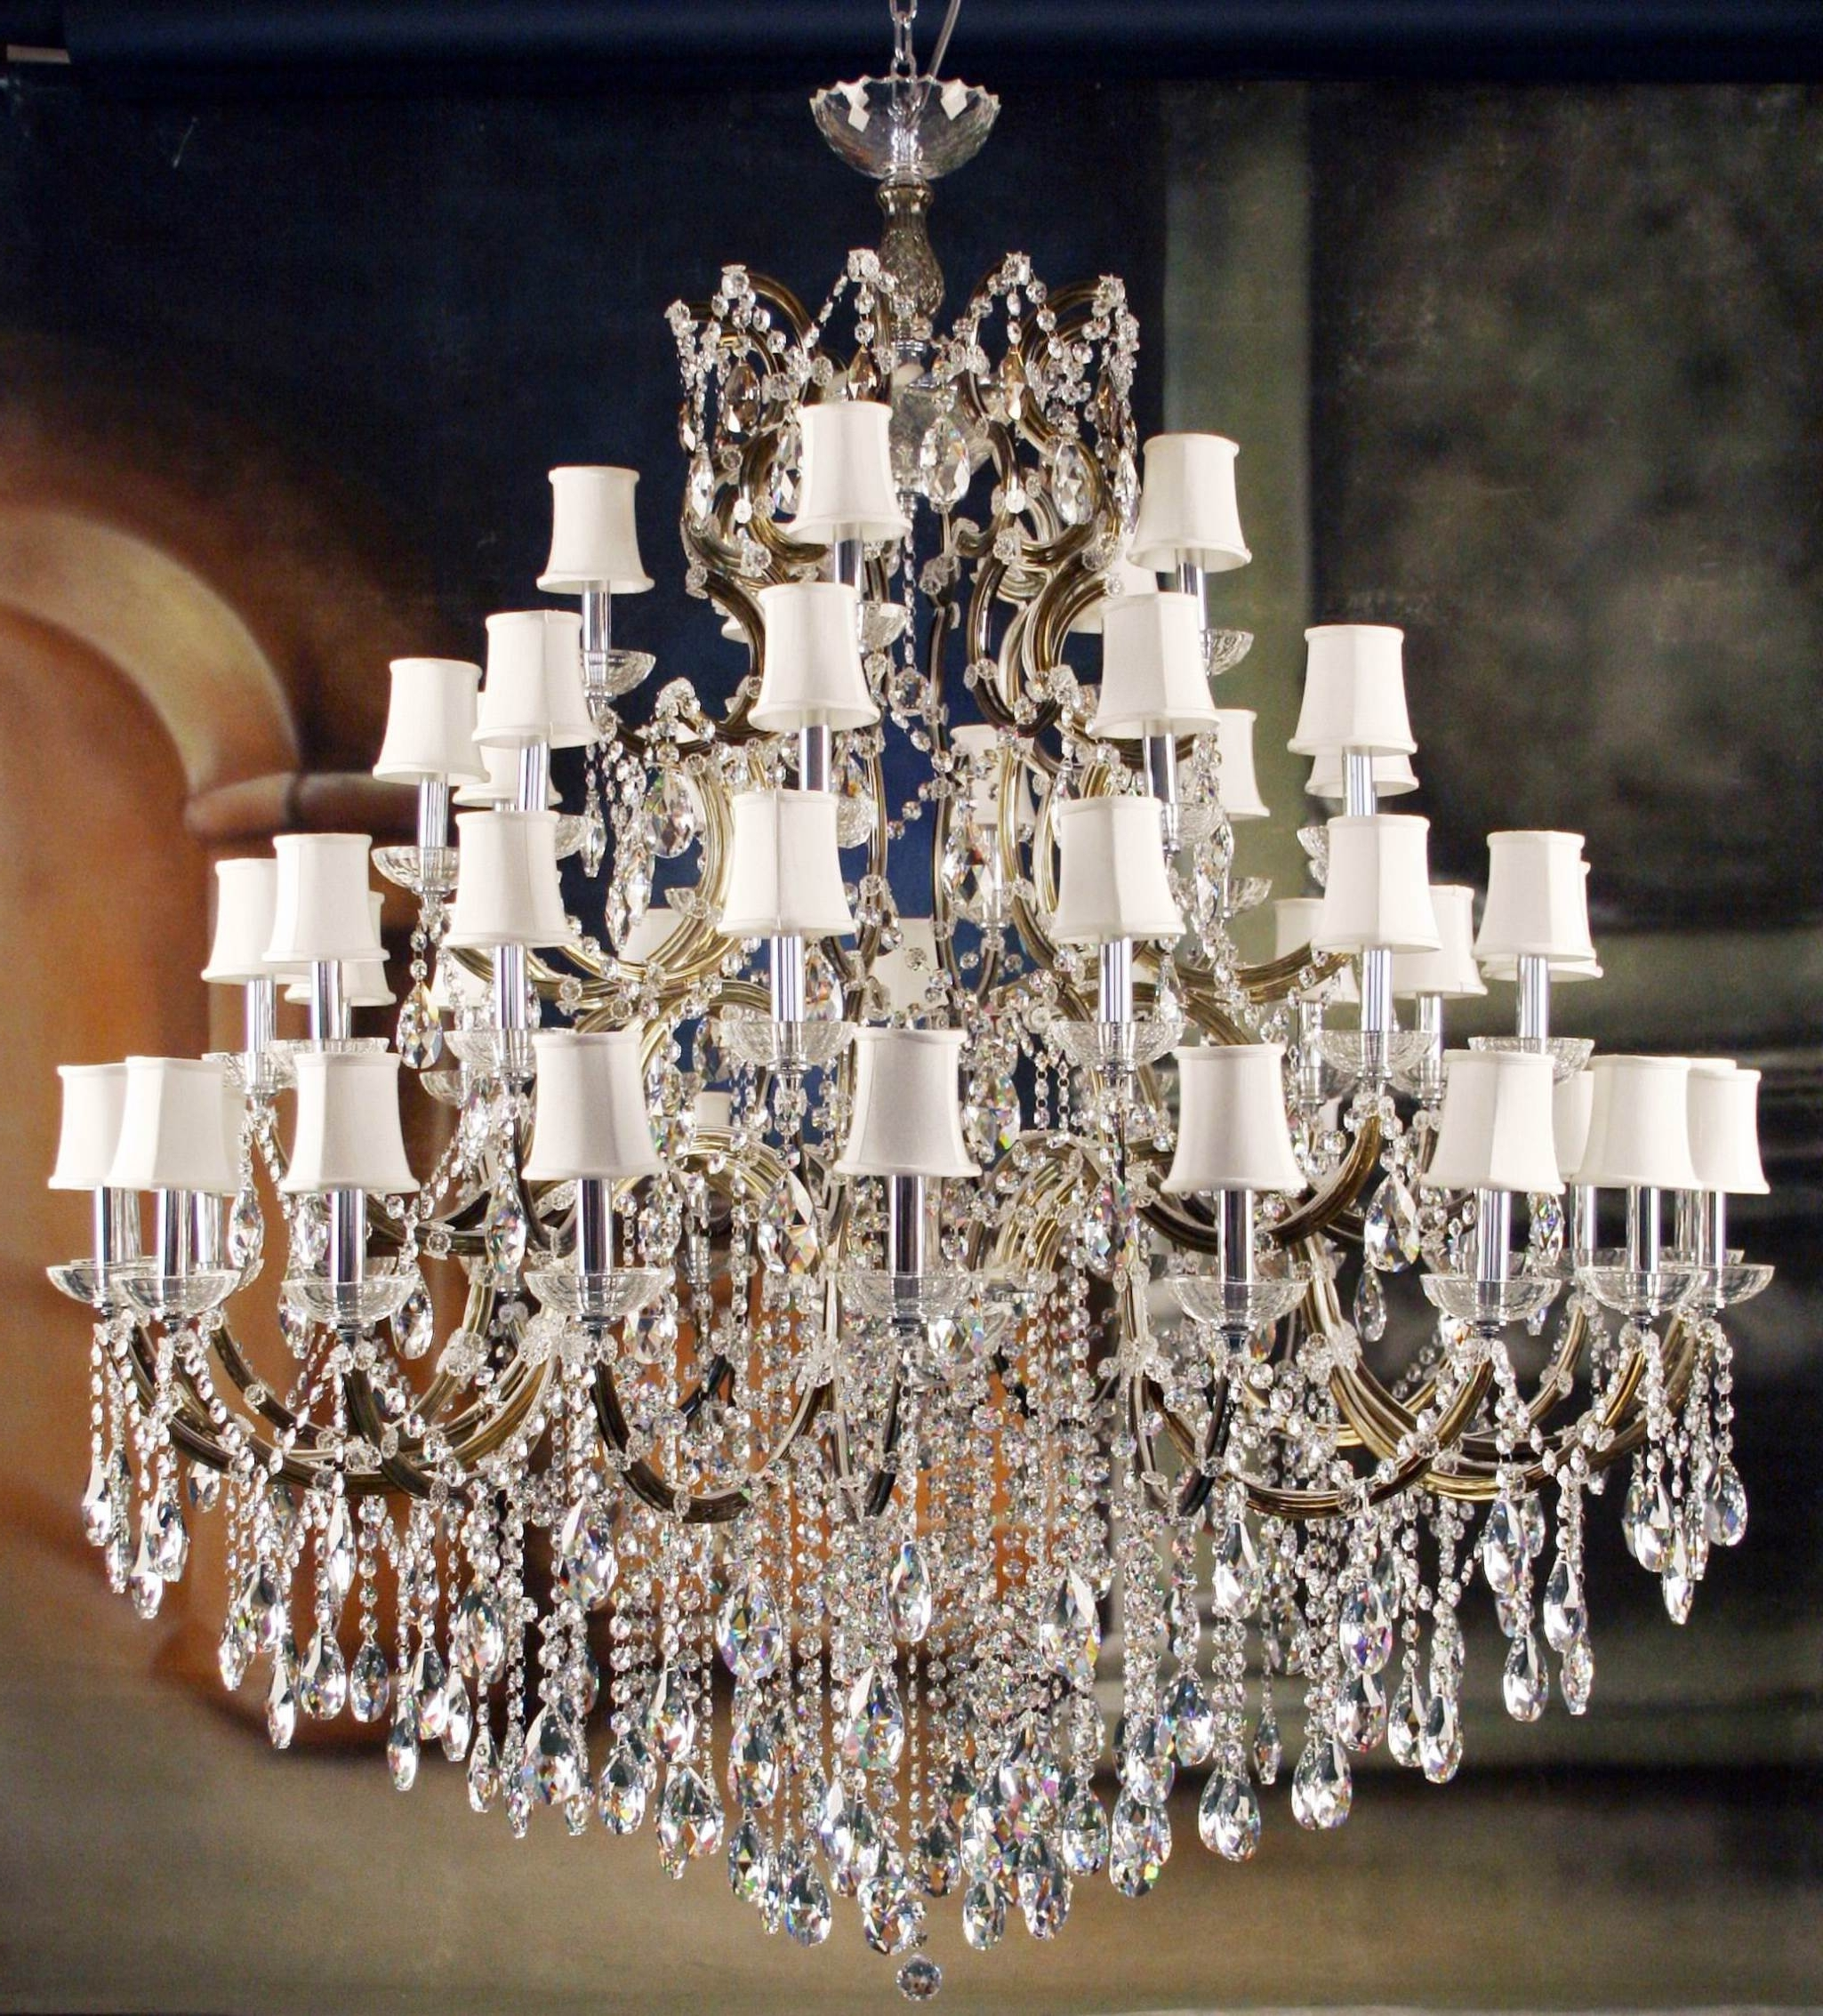 Most Recent Light : Fancy Living Room High Quality Crystal Chandeliers For Home Pertaining To Crystal Chandeliers With Shades (View 13 of 15)